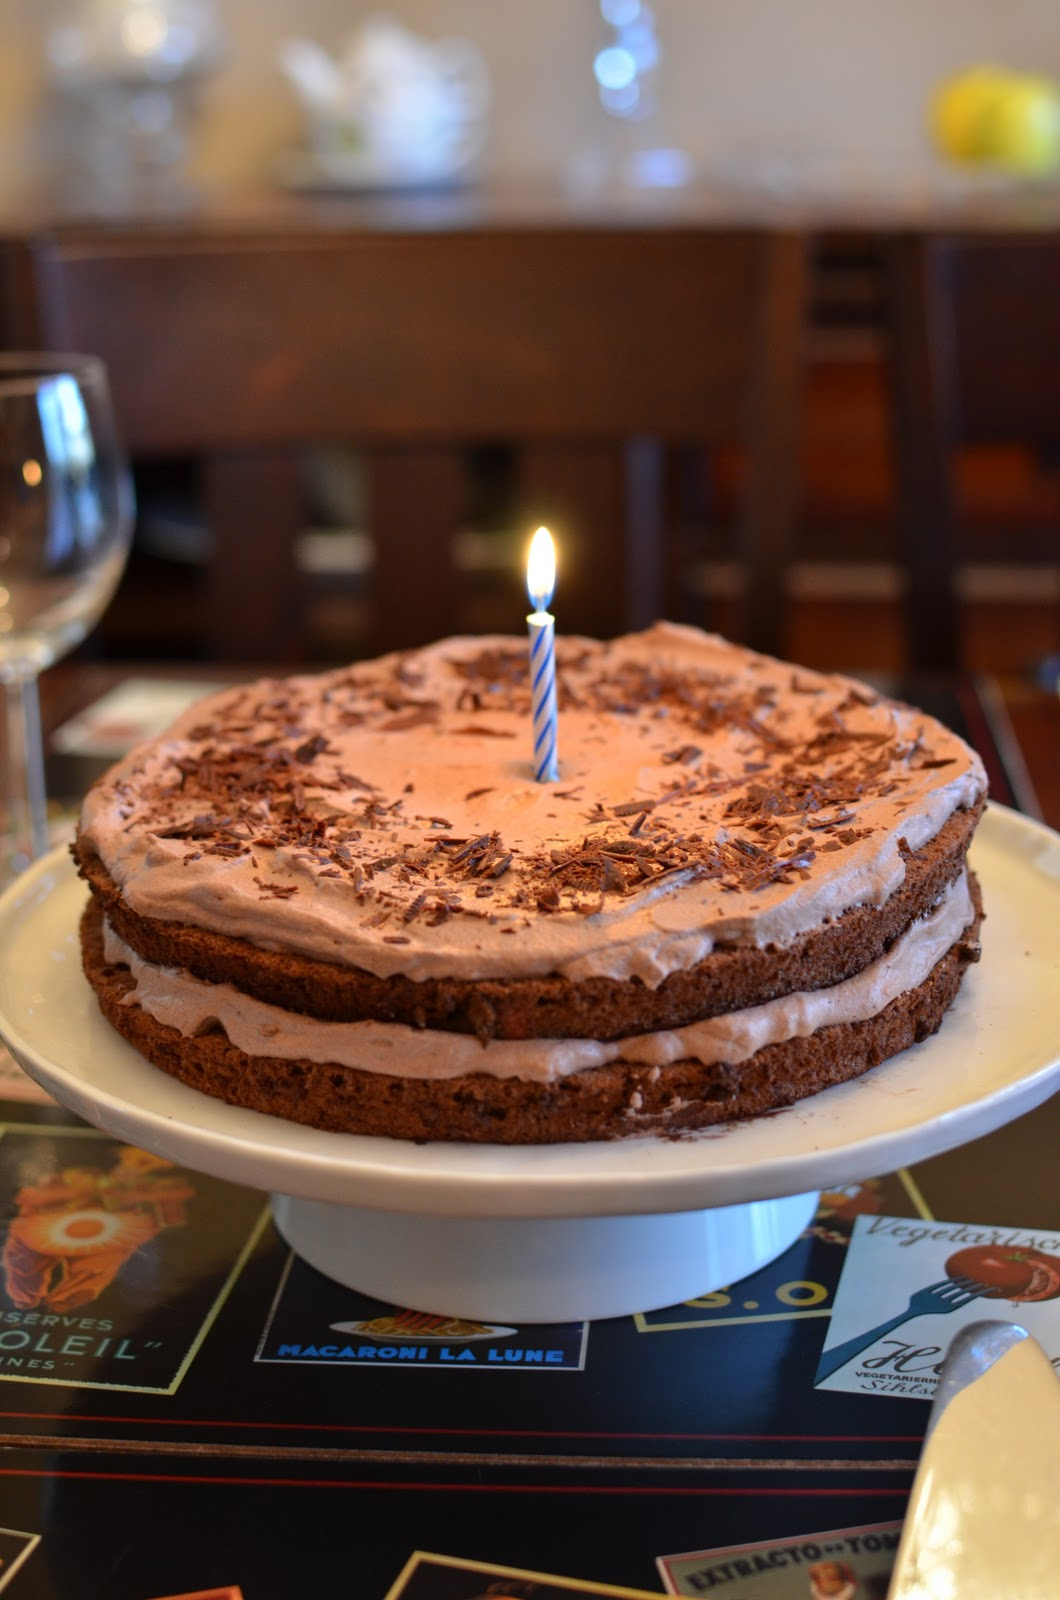 ... the birthday boy, it's Chocolate Cloud Cake with cocoa whipped cream